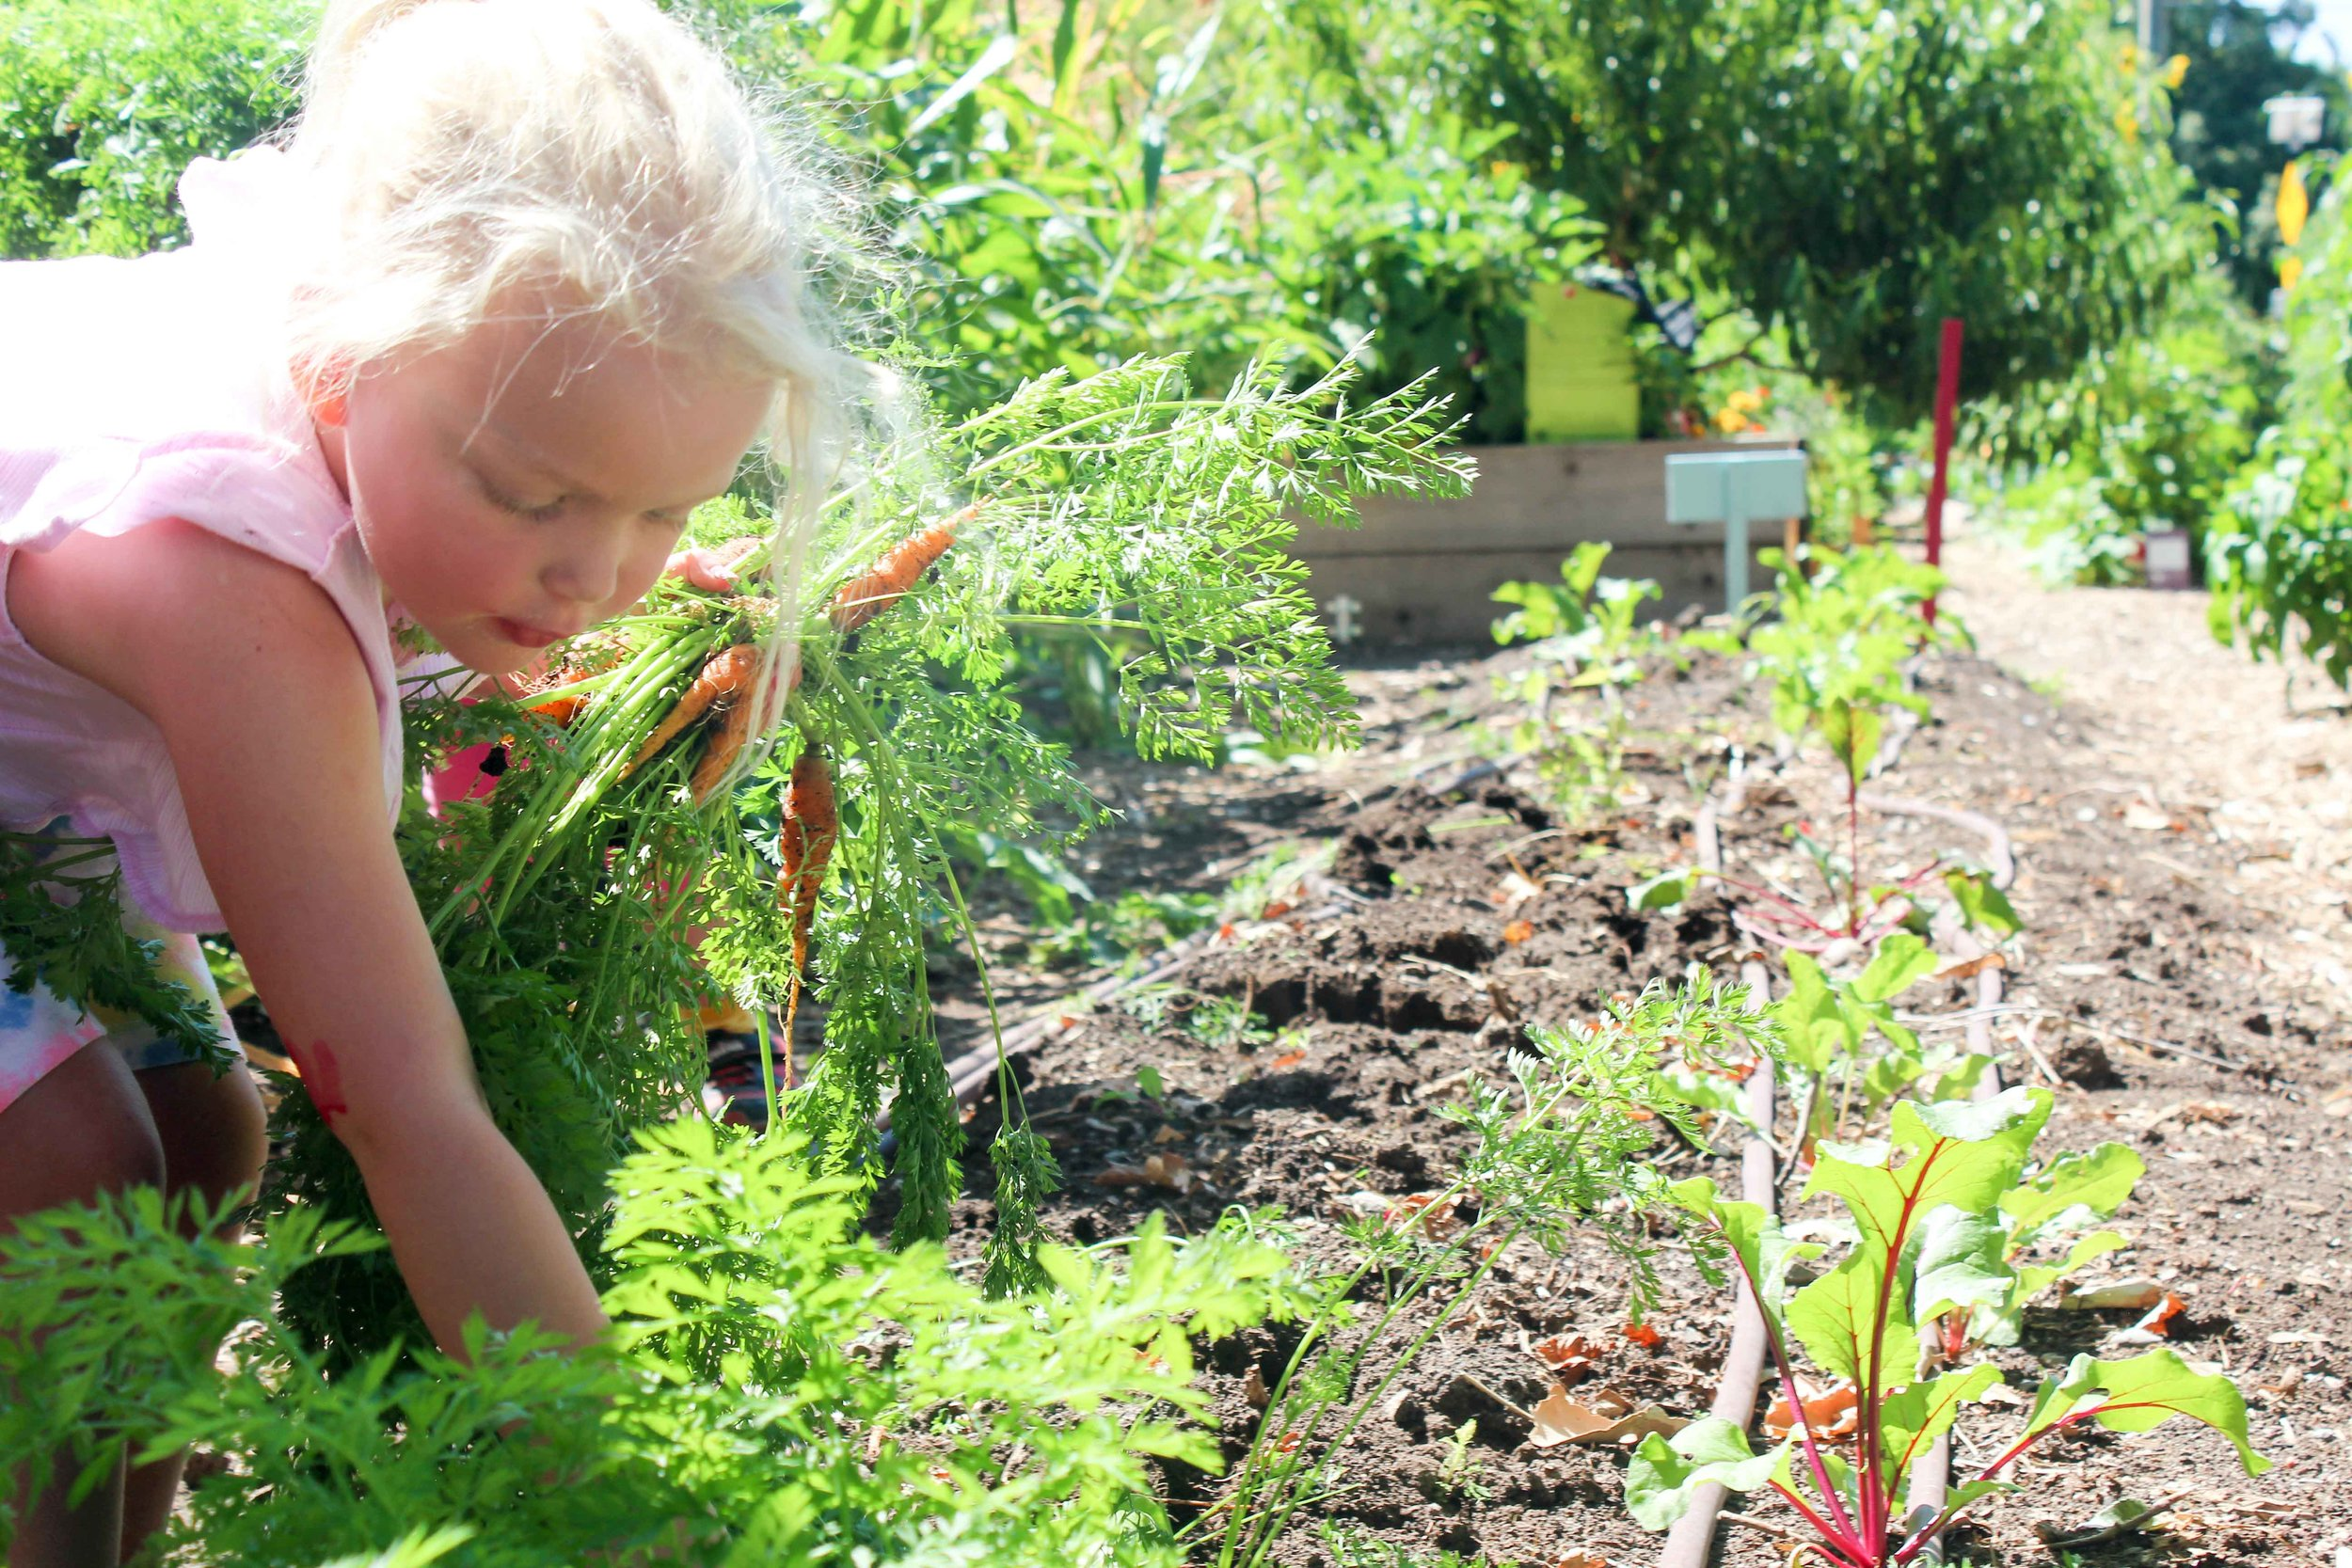 Photo courtesy of Wasatch community gardens